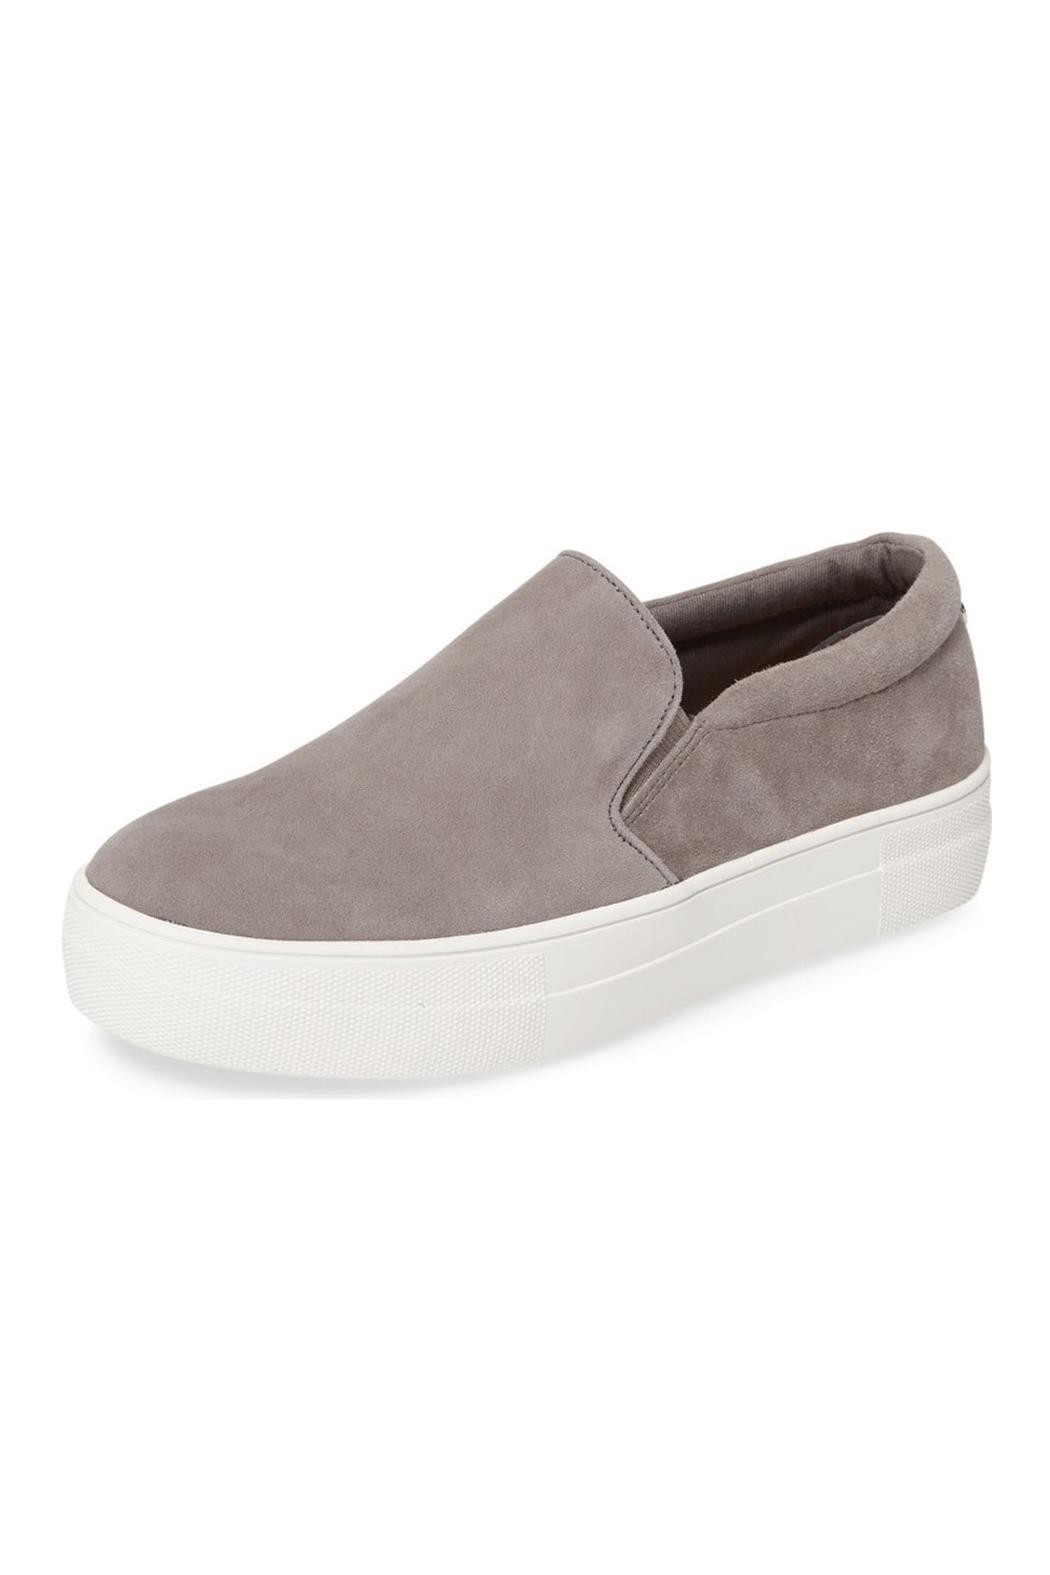 9fe014d0224 Steve Madden Gills Suede Sneaker from New Jersey by Katherine s ...